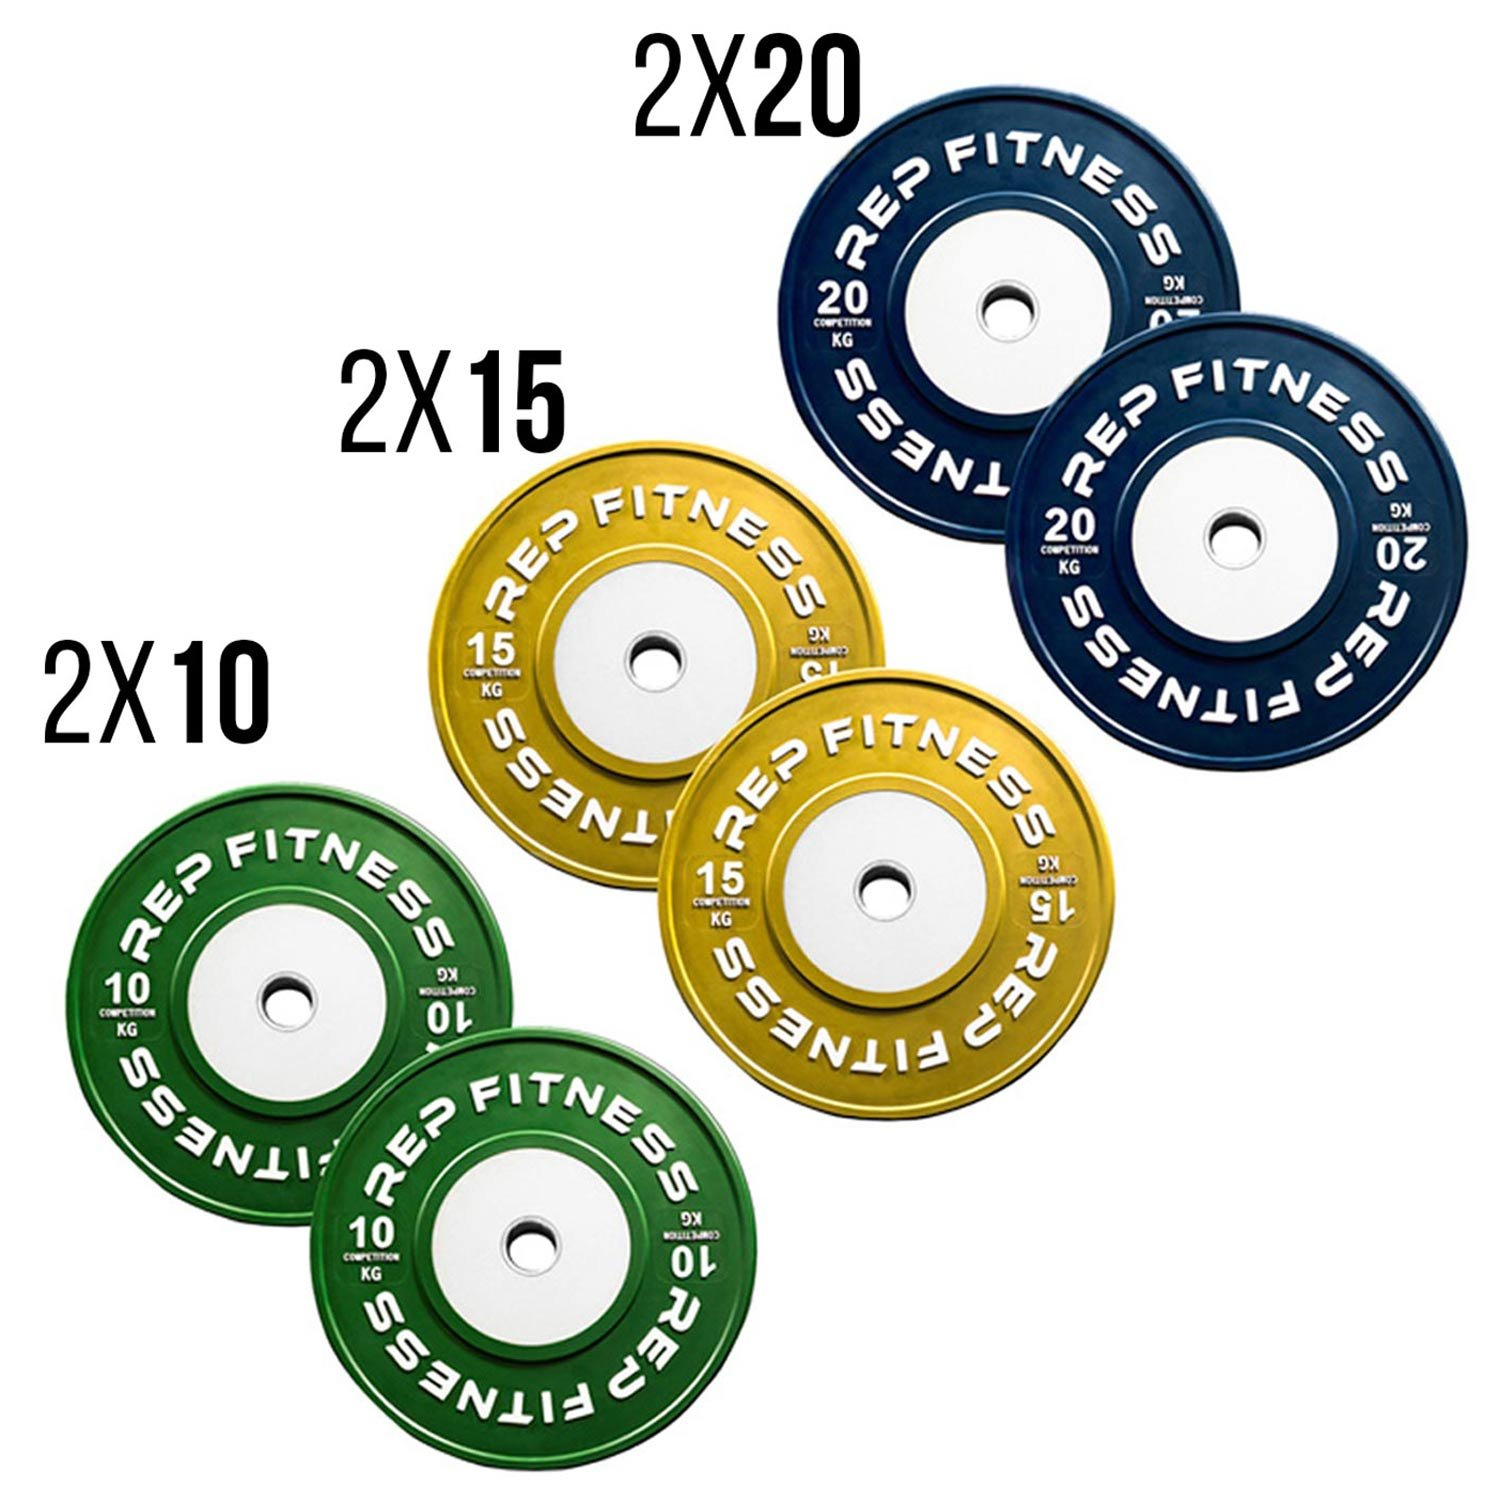 Rep kg Competition Bumper Plates for Olympic Weightlifting, 90kg Set